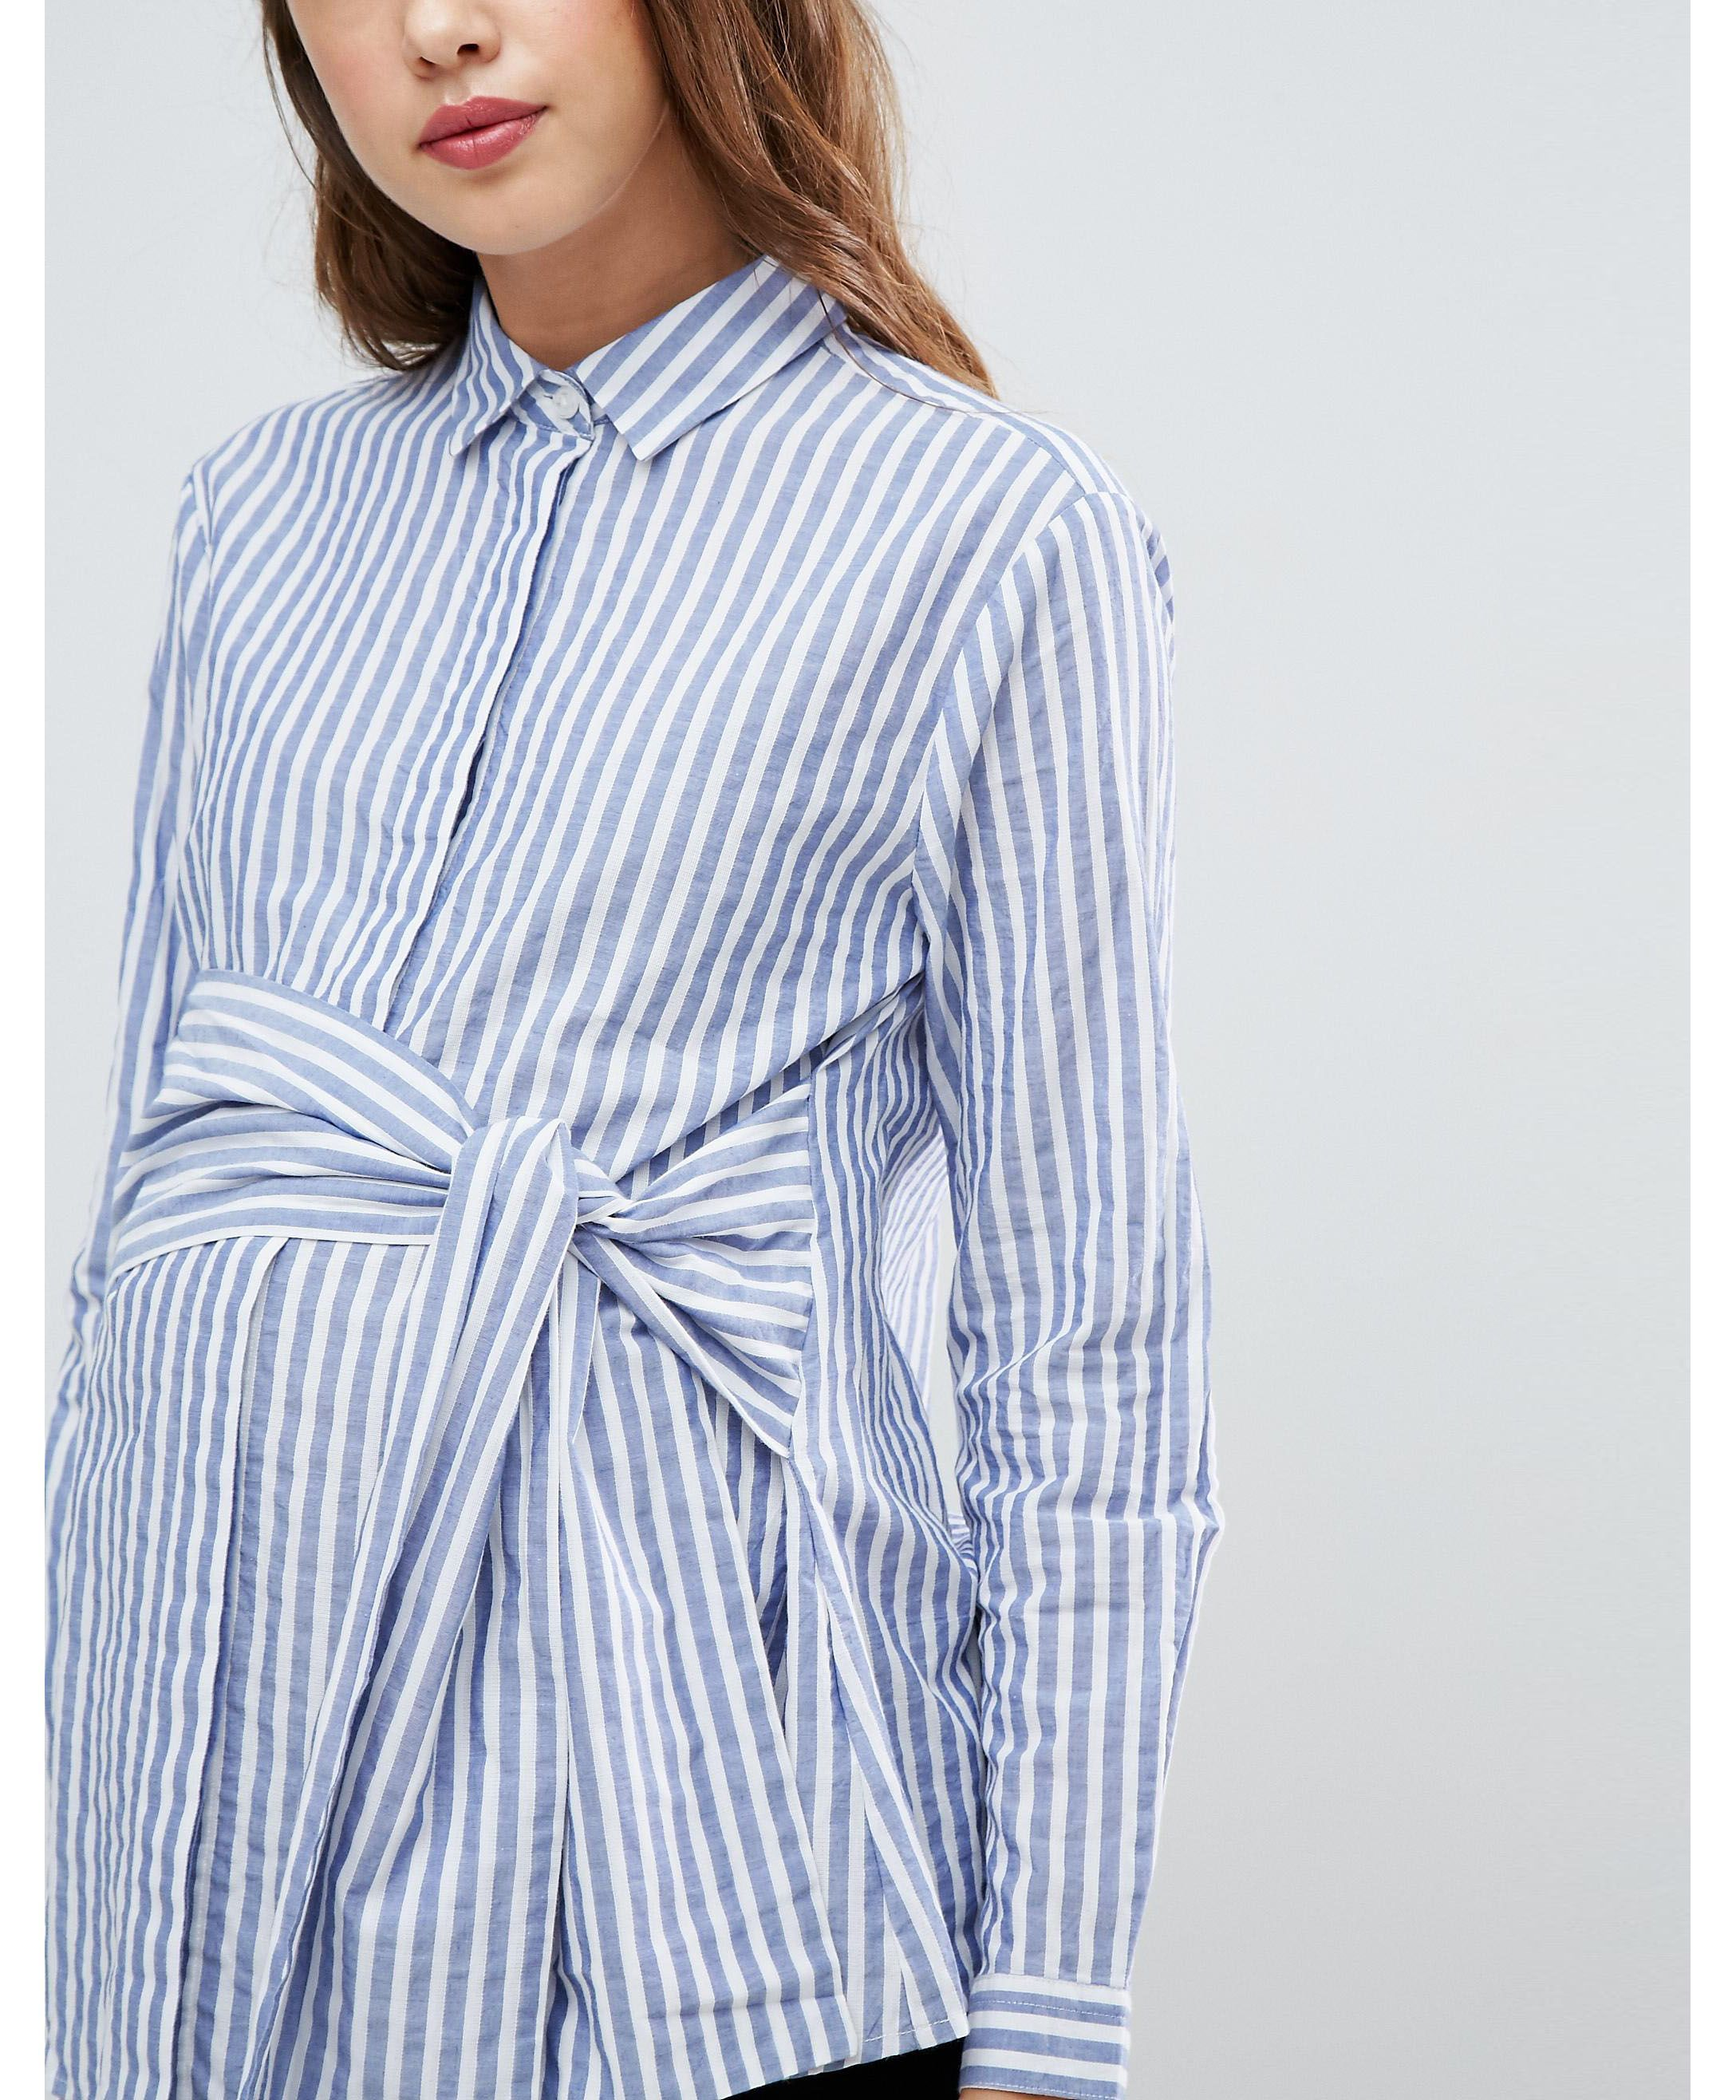 ☆ASOS Maternity Tie Waist Shirt in Stripe